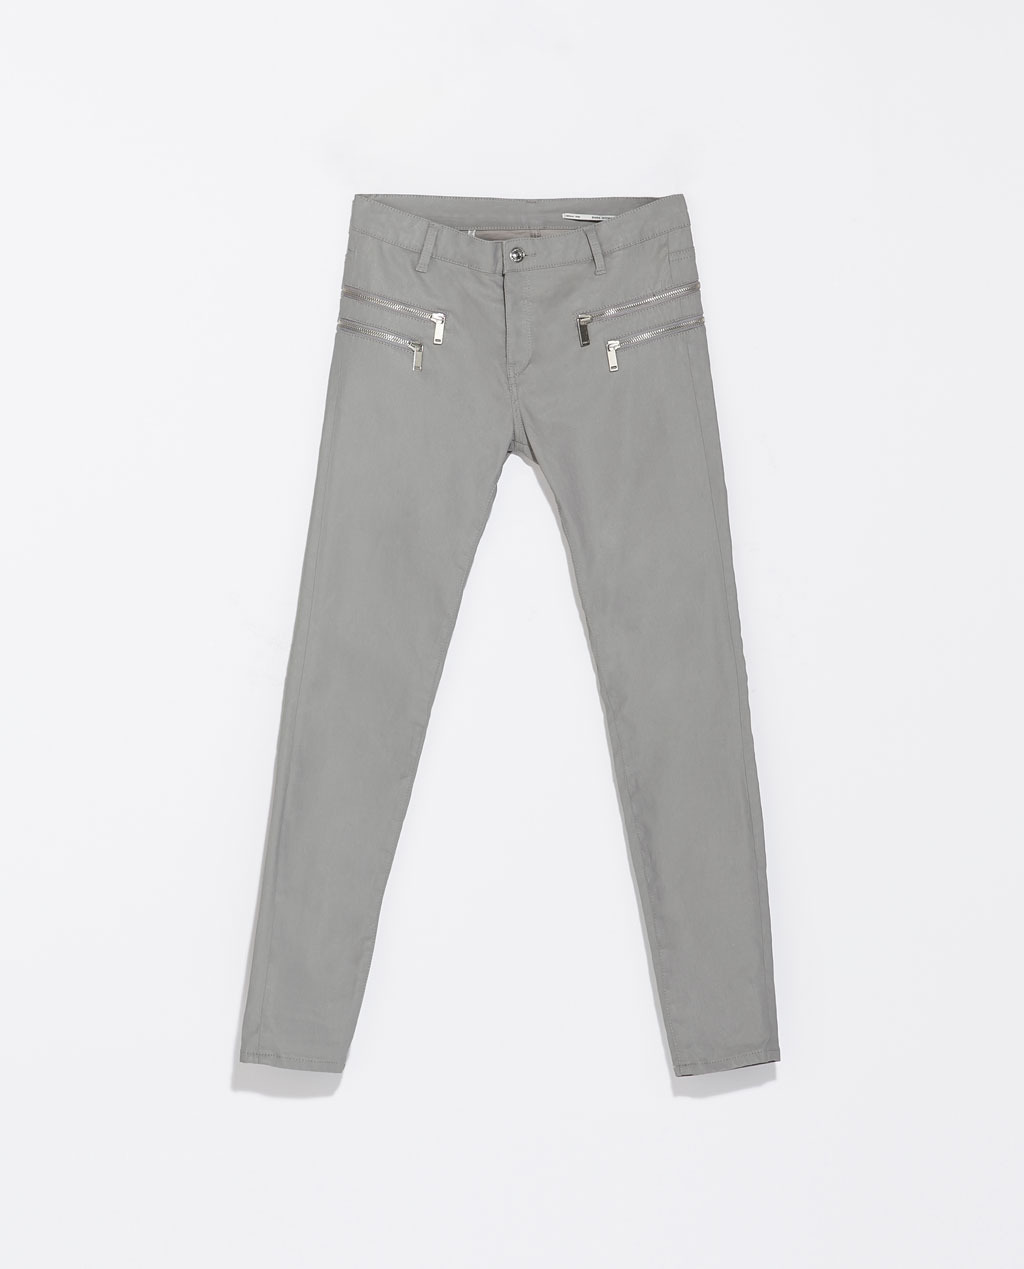 Coated Trousers With Zips - pattern: plain; waist: mid/regular rise; predominant colour: light grey; occasions: casual, creative work; length: ankle length; fibres: cotton - stretch; texture group: waxed cotton; fit: skinny/tight leg; pattern type: fabric; style: standard; season: s/s 2014